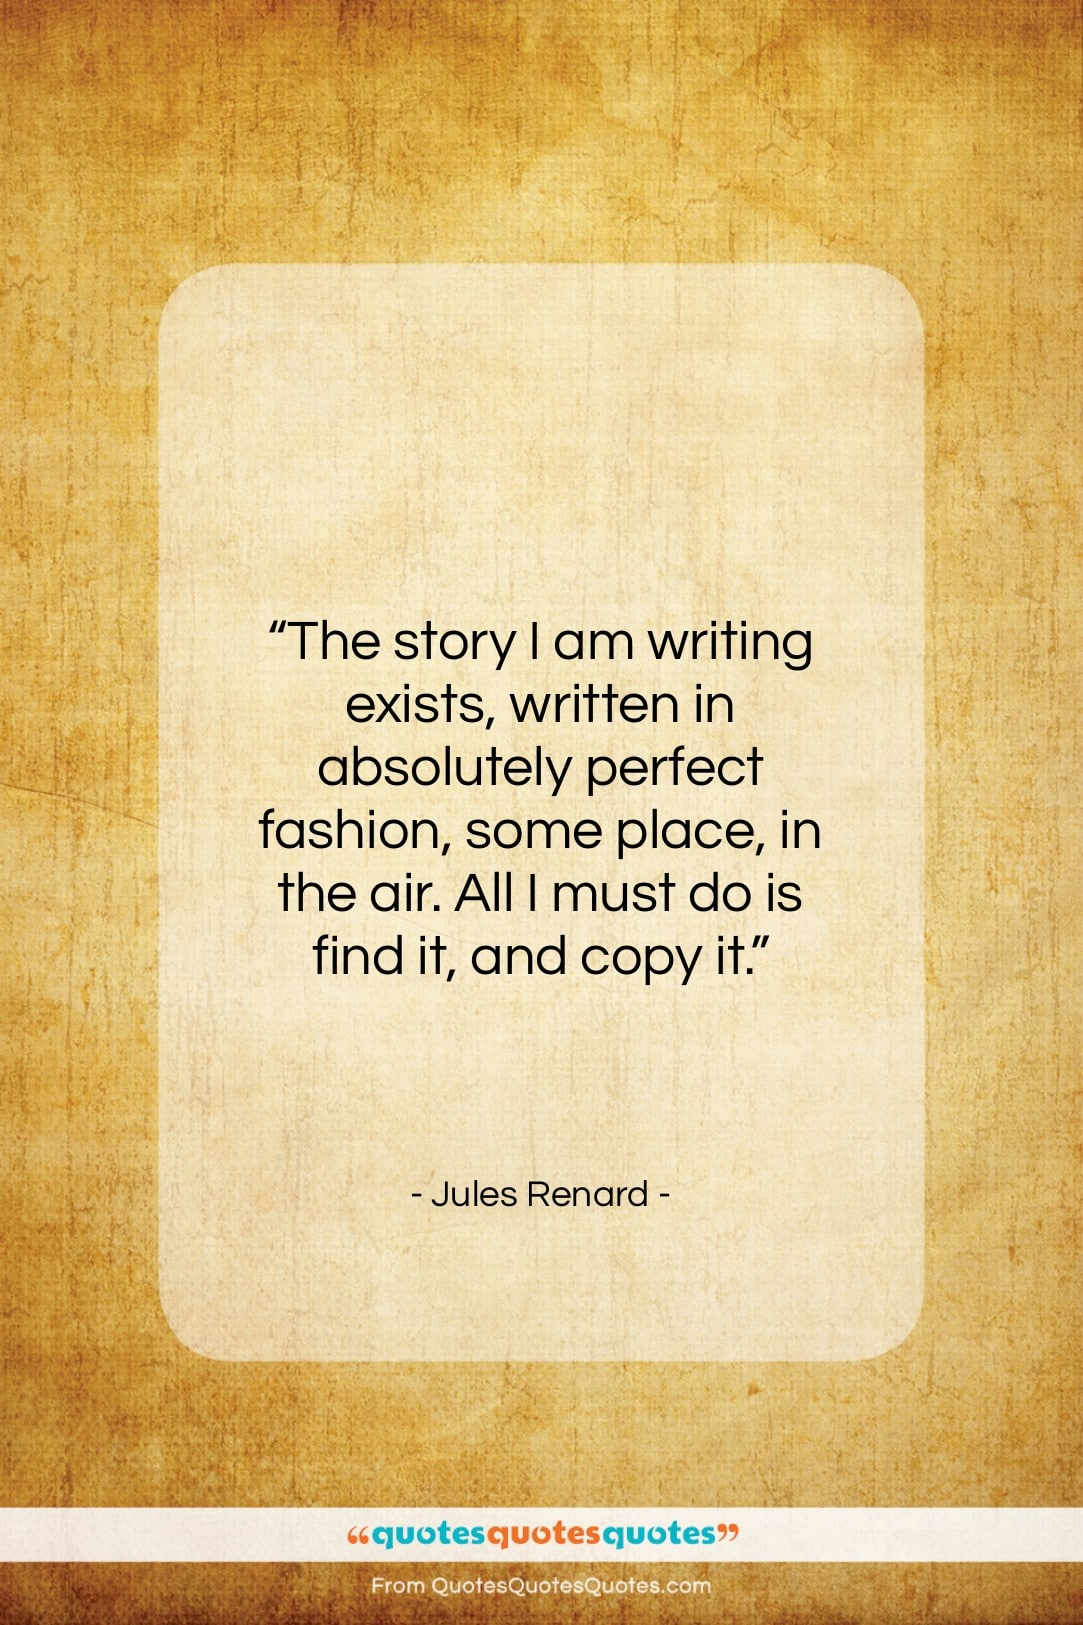 """Jules Renard quote: """"The story I am writing exists, written…""""- at QuotesQuotesQuotes.com"""